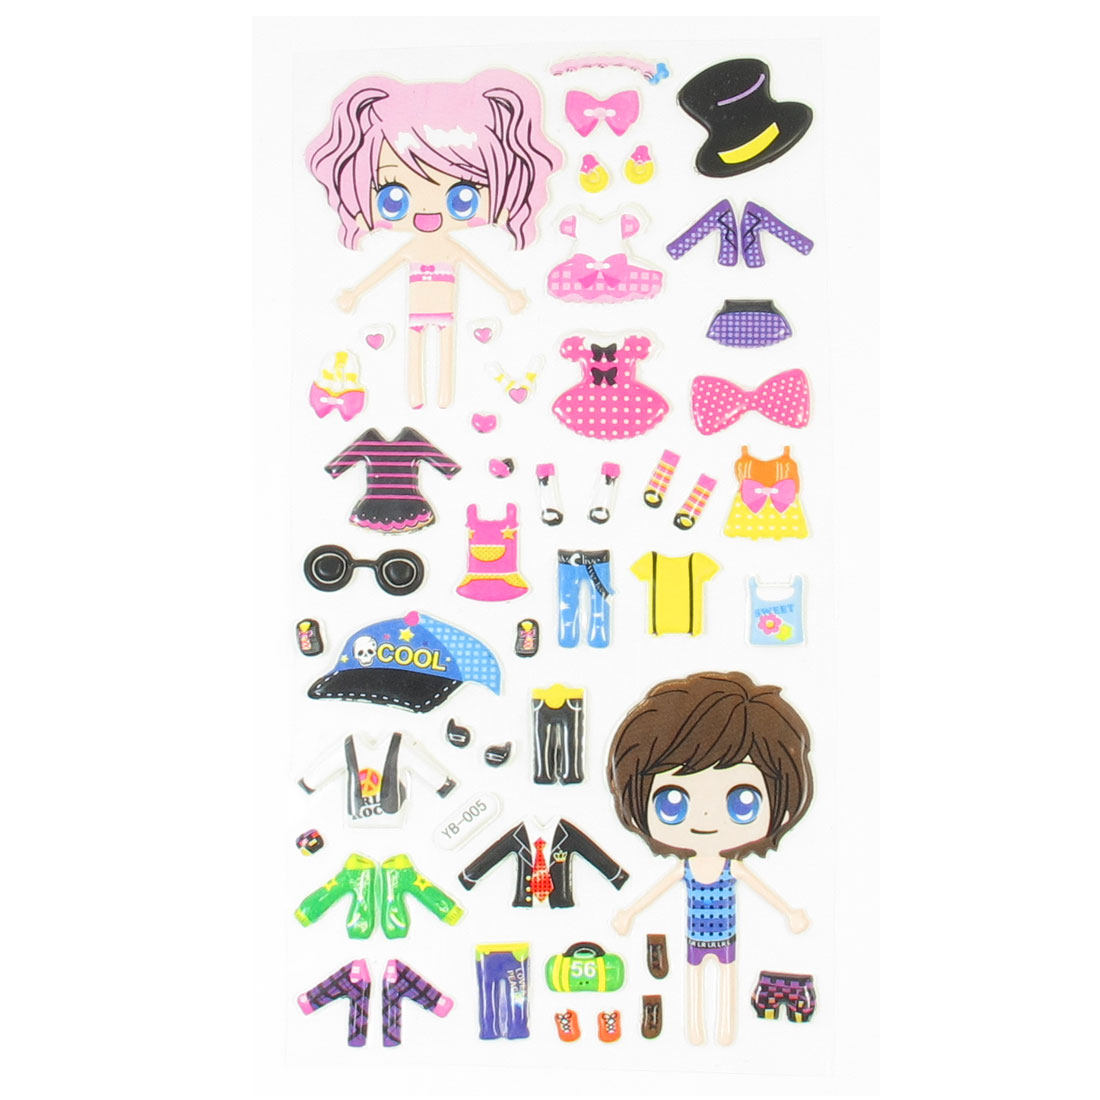 Girls Dress Up Dolls 3D DIY Crafts Sponge Puffy Sticker Decor Colorful